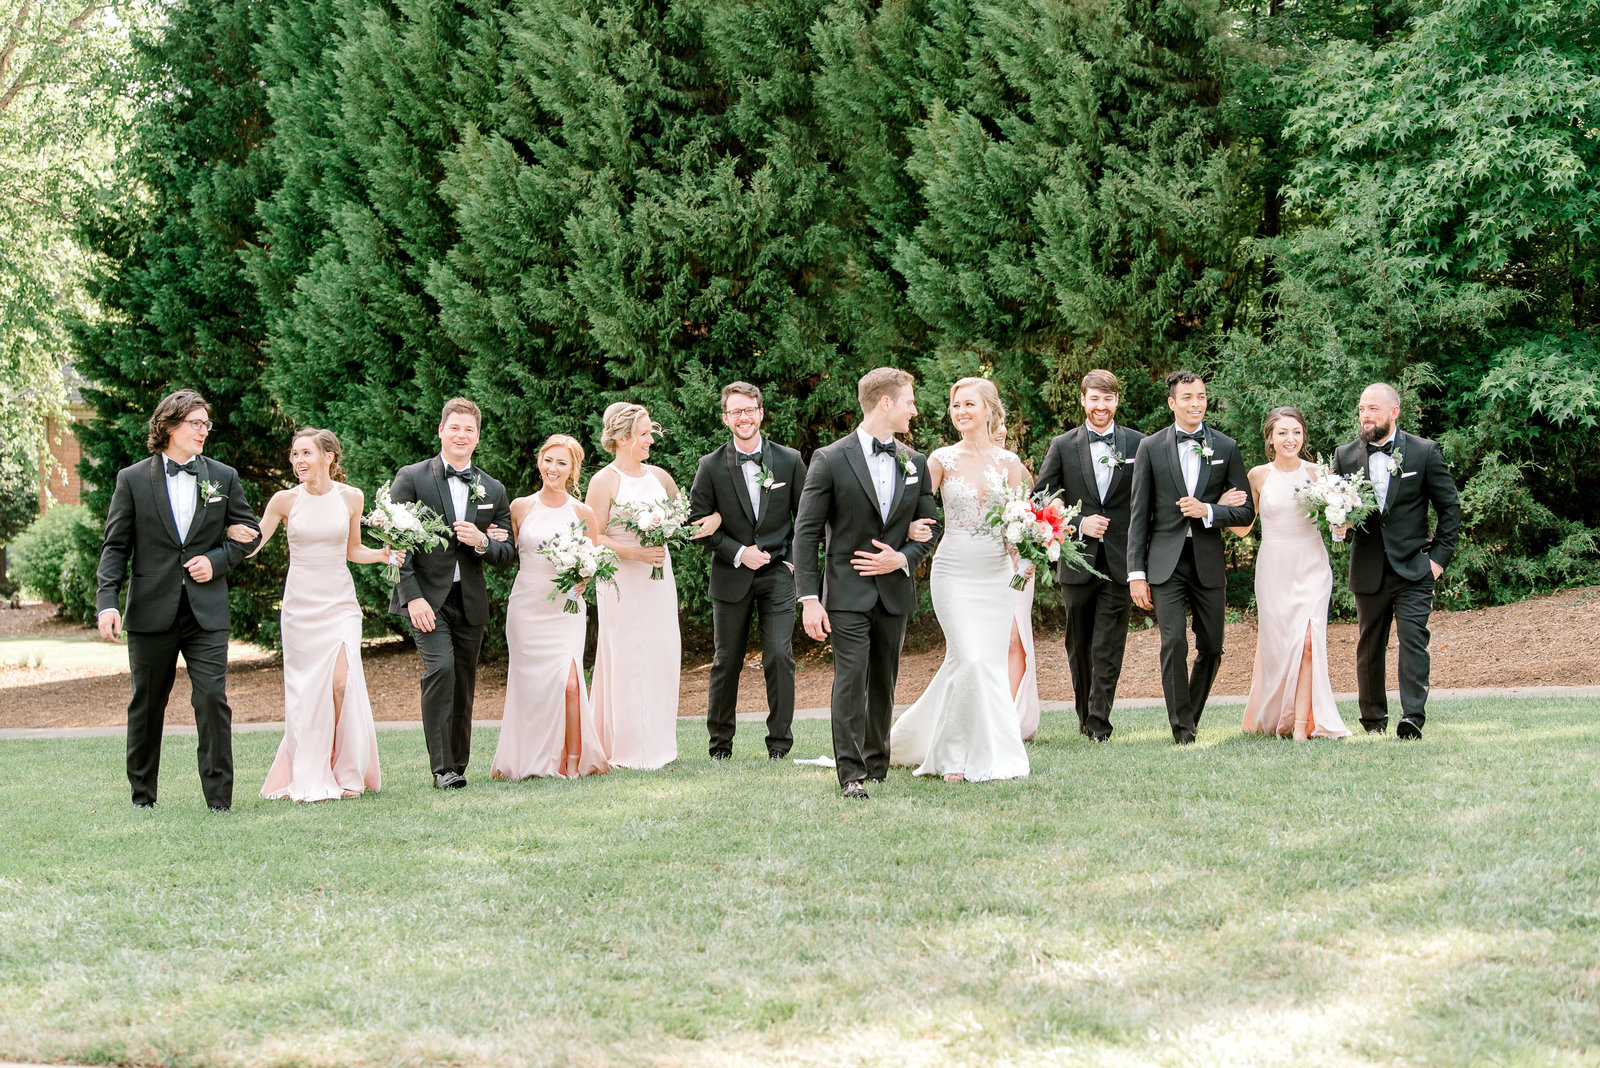 charlotte-wedding-photographer-firethorne-country-club-wedding-golf-course-fine-art-bright-and-airy-film-photographer-alyssa-frost-photography-7